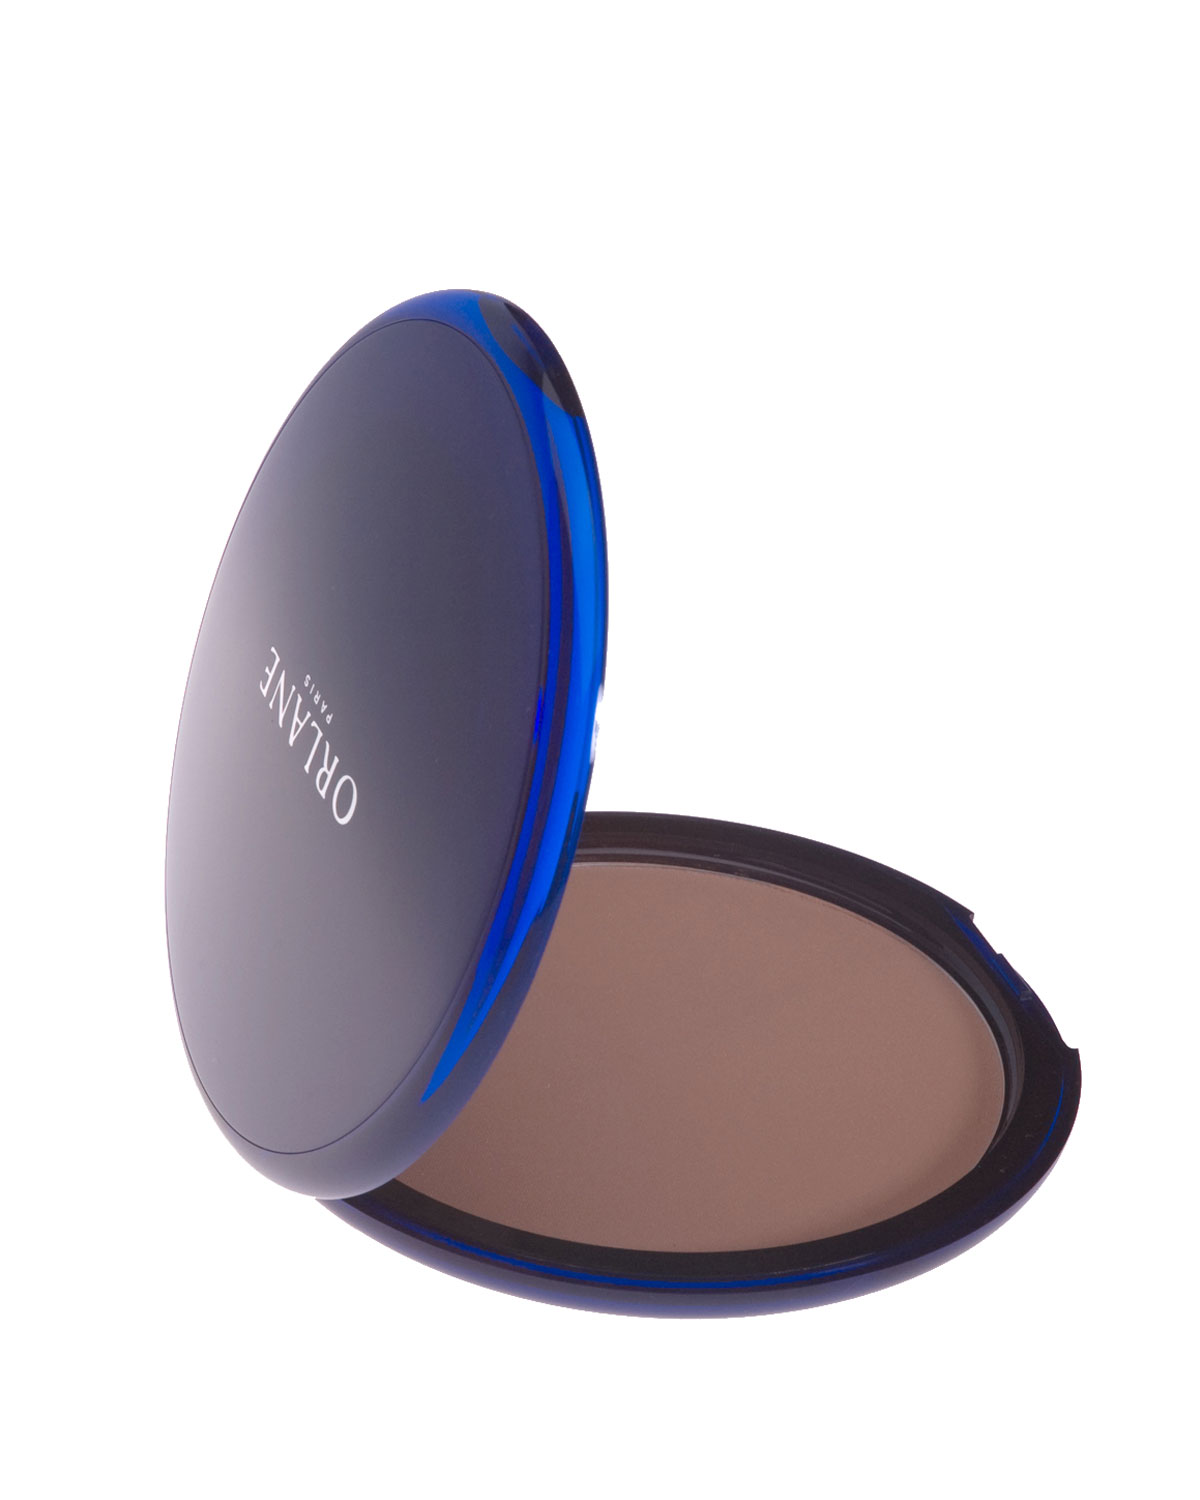 ORLANE Soleil Cuivre 02 Compact Bronzer in Solell Culvre